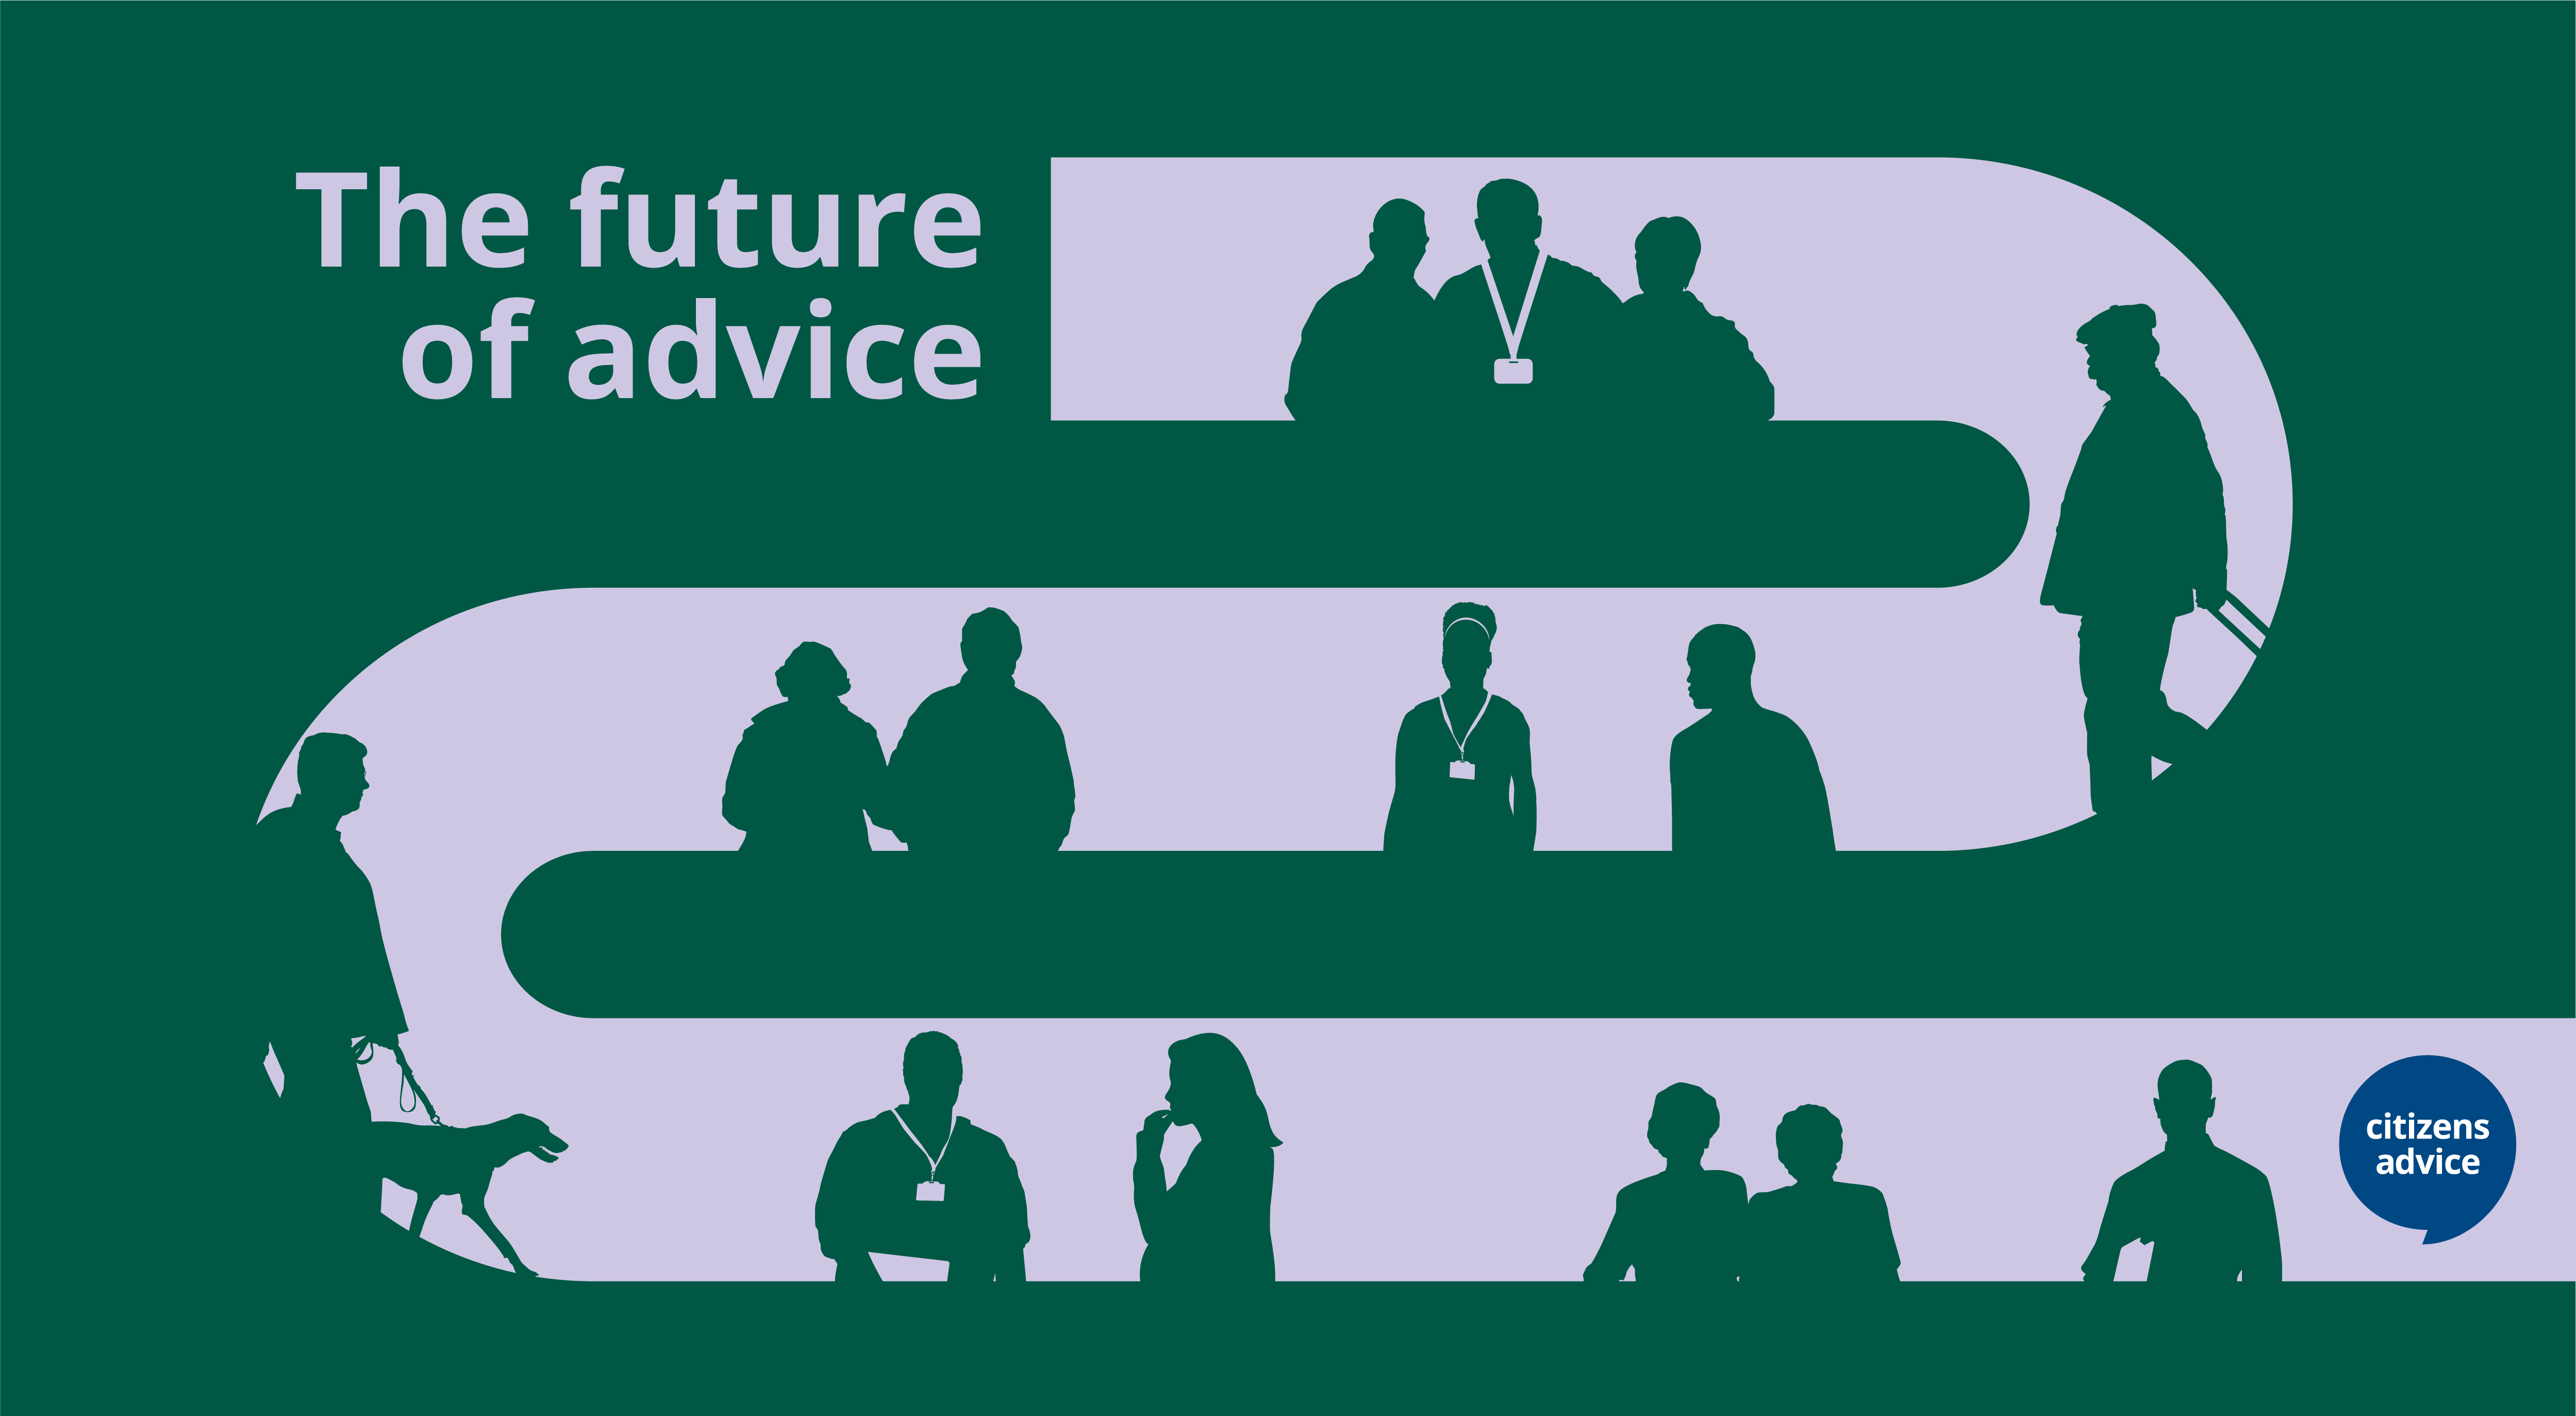 Future of advice - silhouettes of Citizens Advice advisers and clients